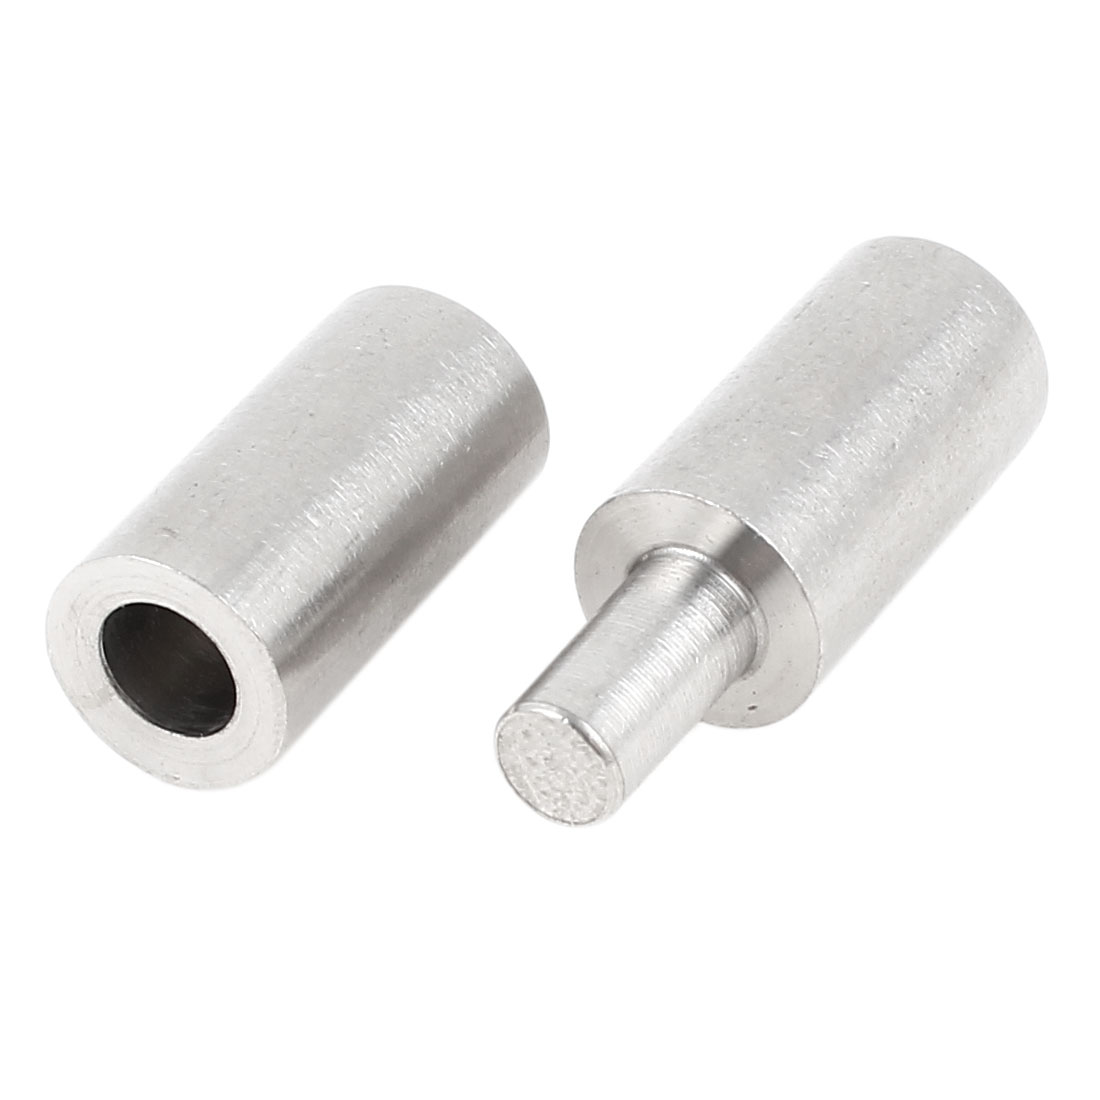 Home Door Window Part Male to Female M/F Cylinder Shaped Stainless Steel Grease Hinge Pin 45mm x 11mm